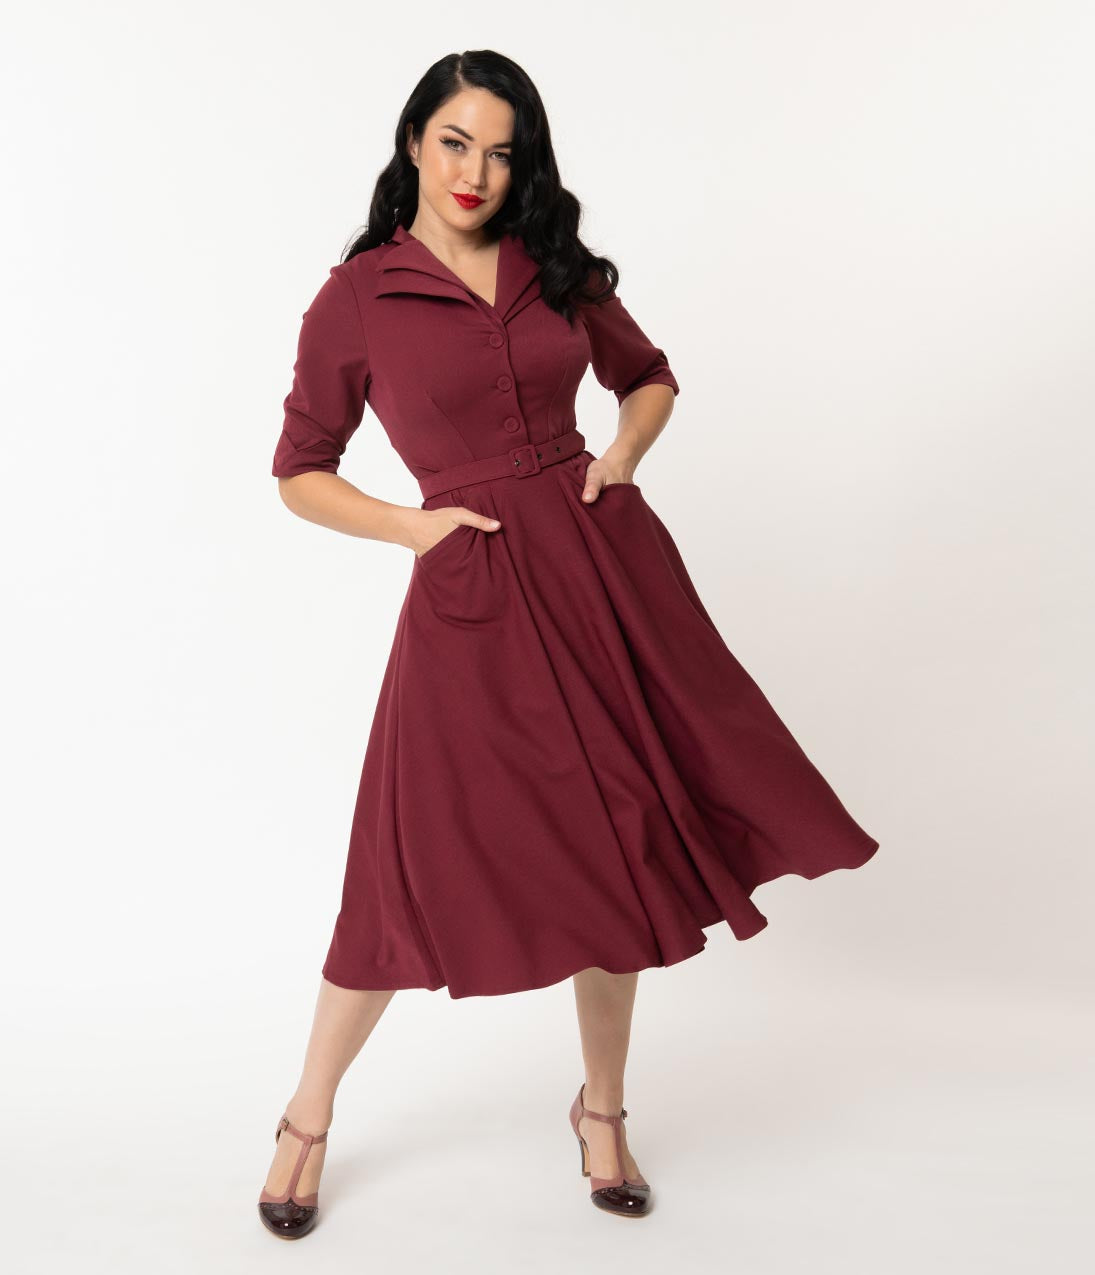 1940s Dresses | 40s Dress, Swing Dress Miss Candyfloss 1940S Wine Sleeved Davignon Swing Dress $138.00 AT vintagedancer.com